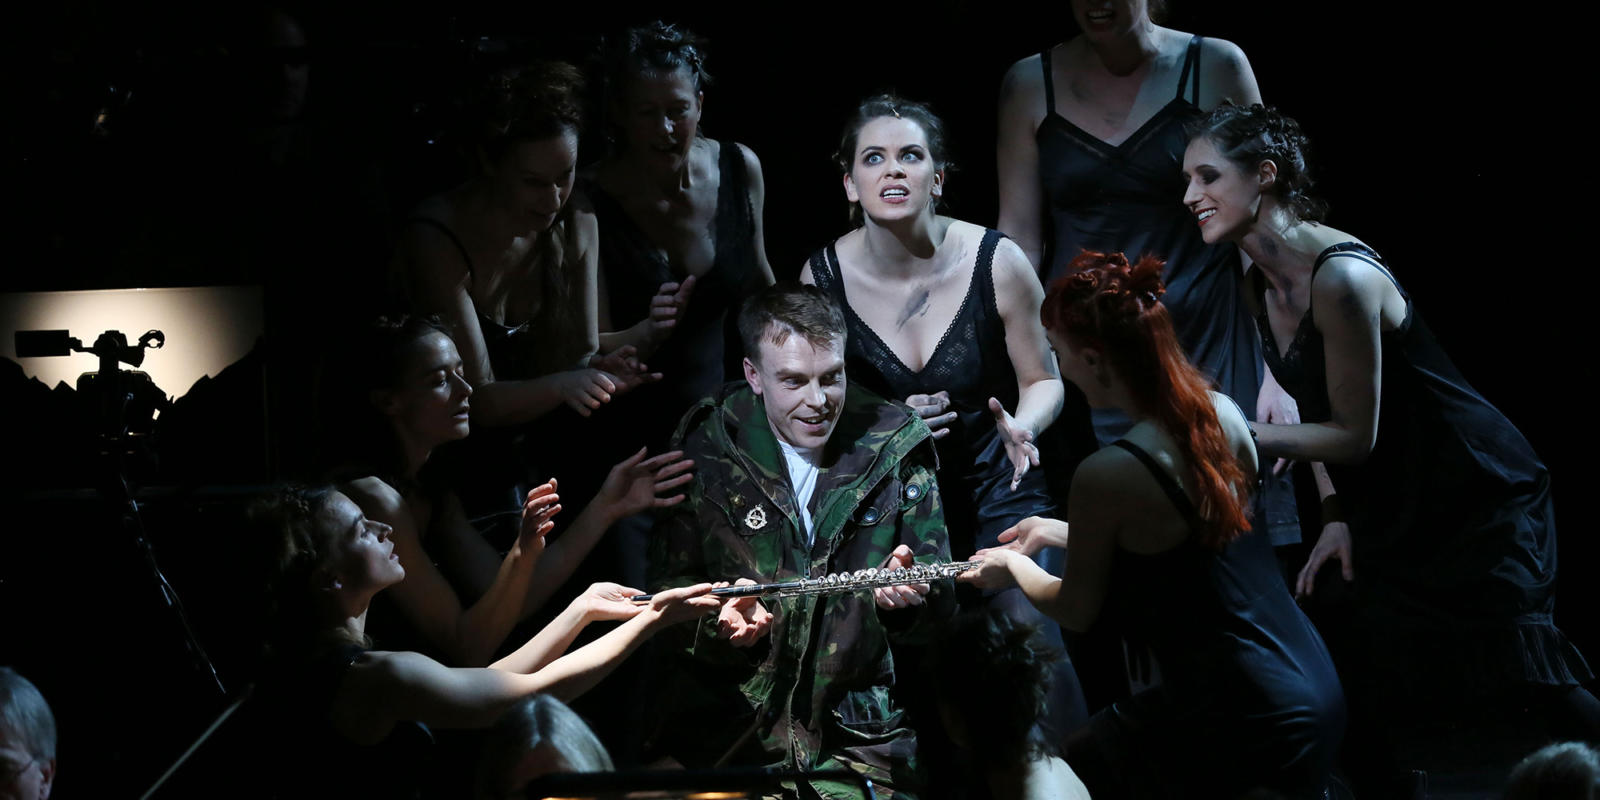 ENO1819 The Magic Flute: Rupert Charlesworth © Donald Cooper